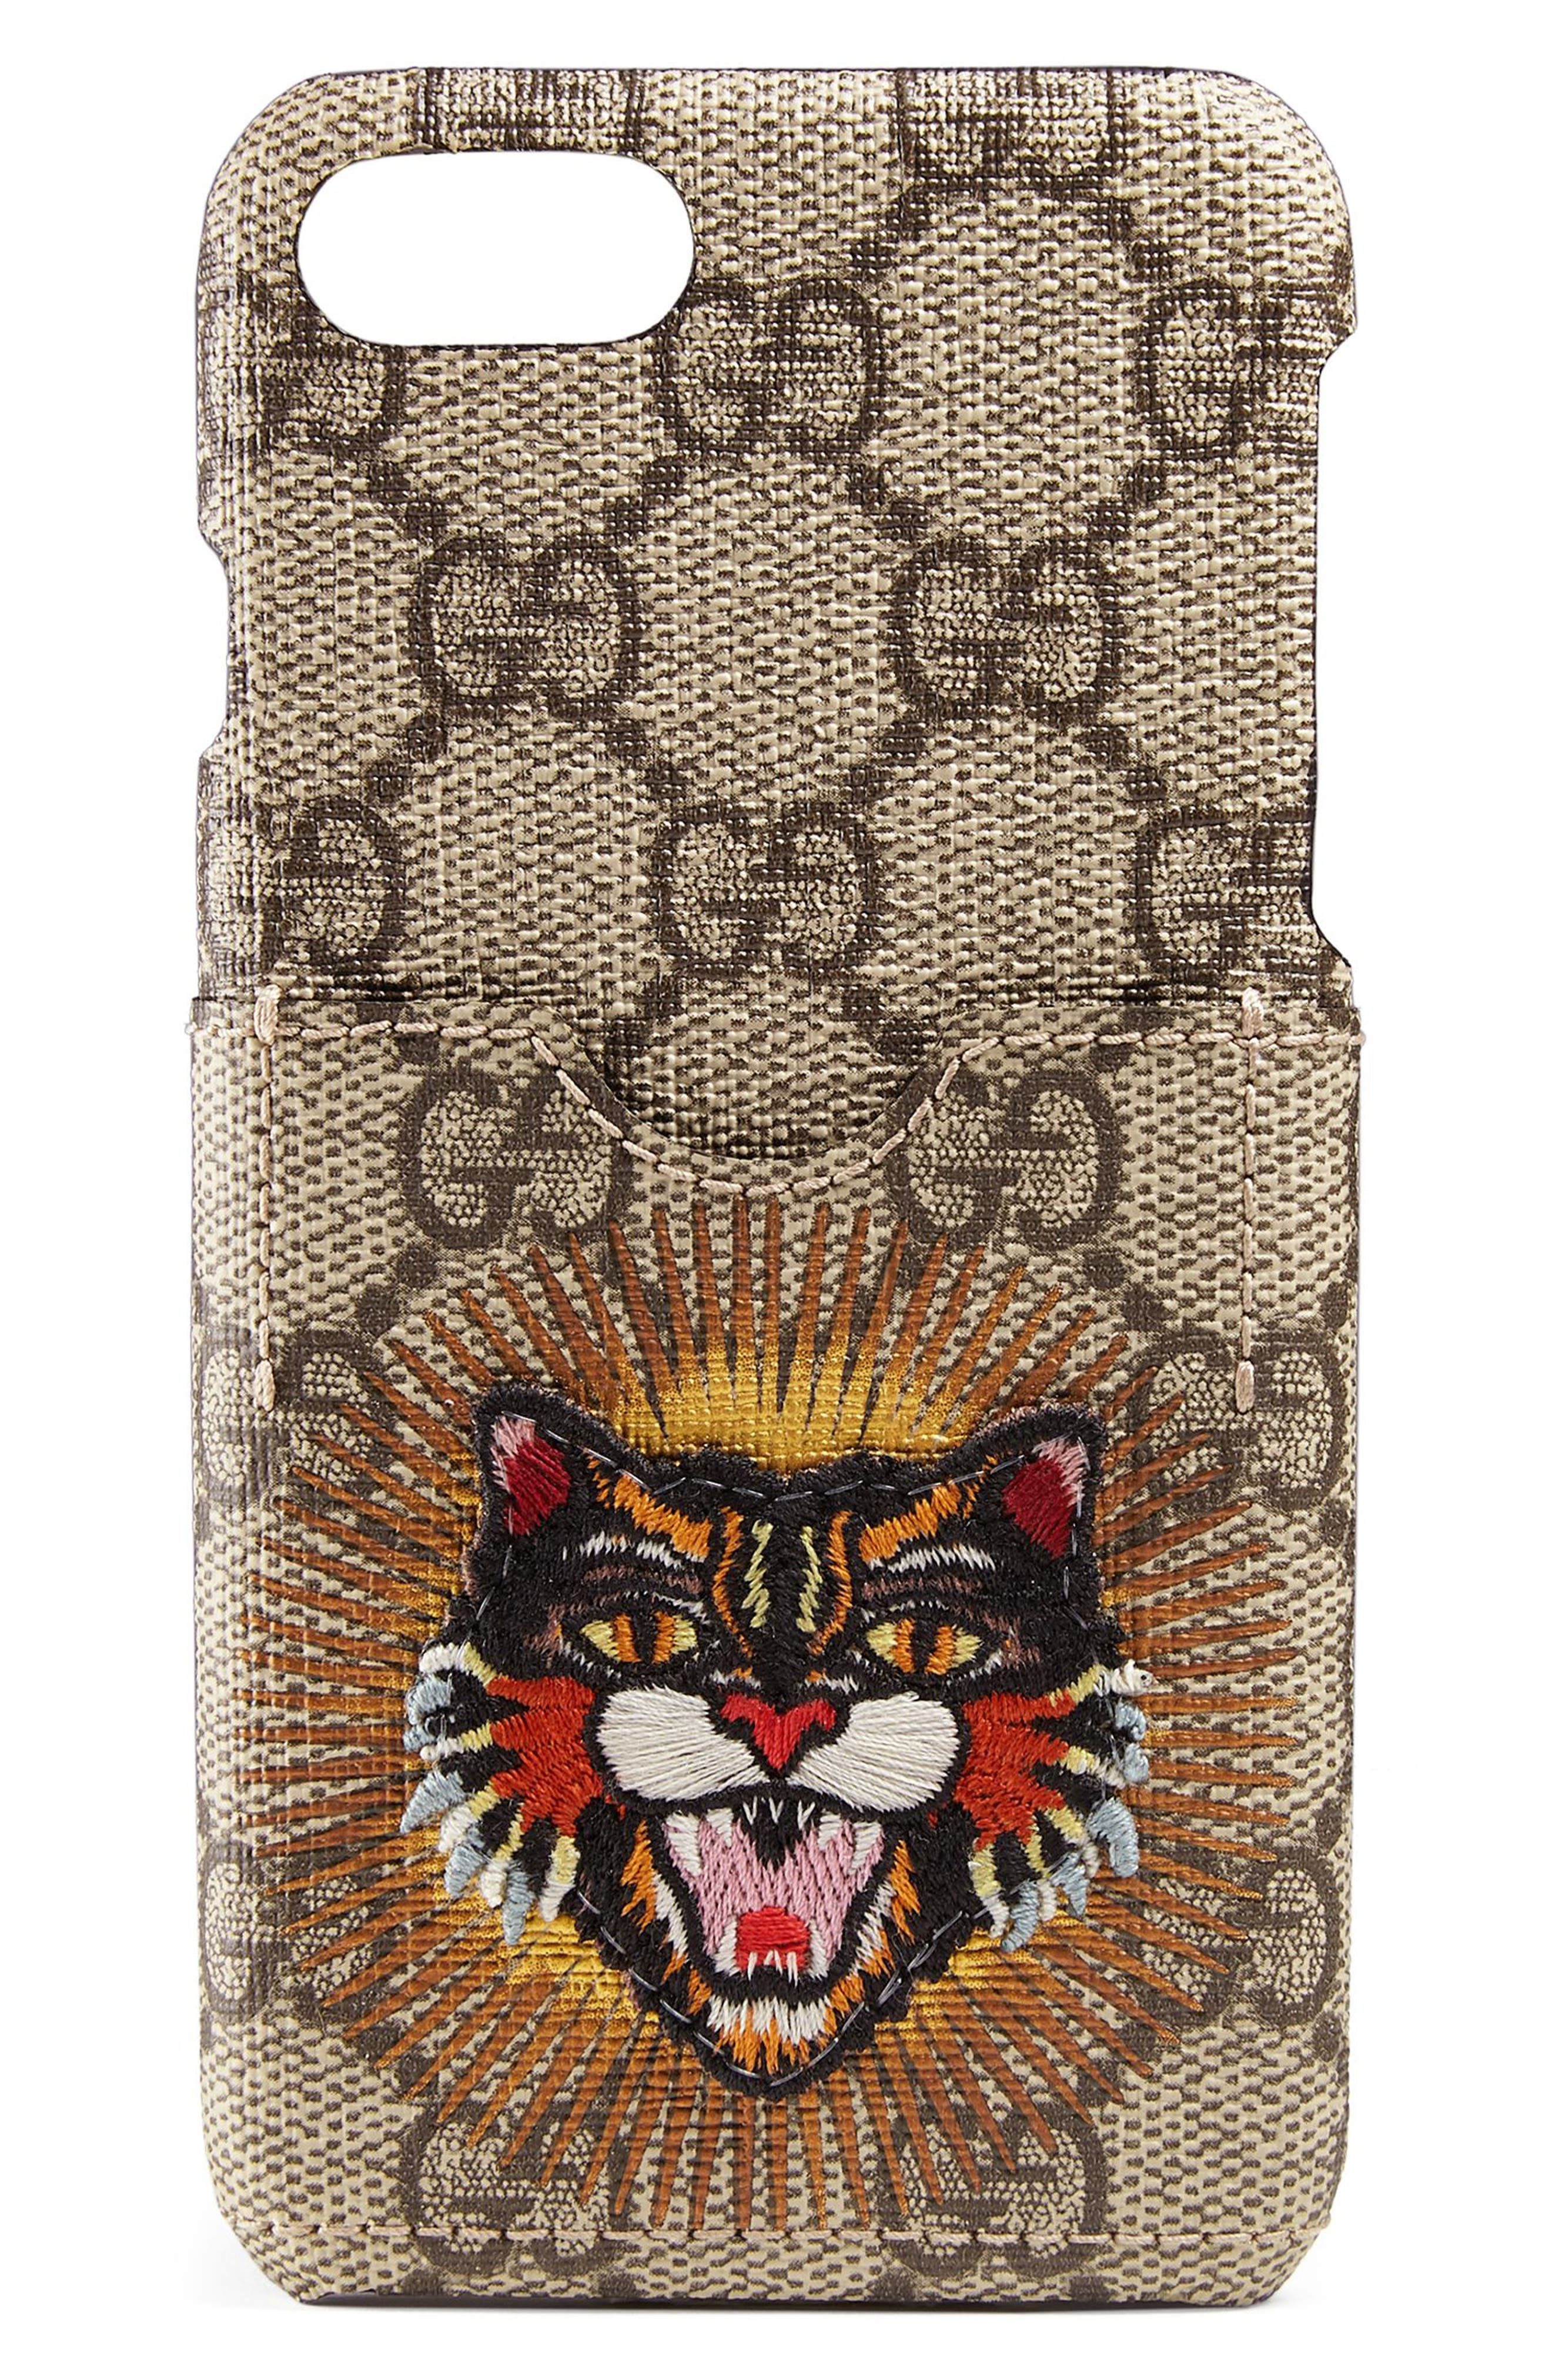 GUCCI Embroidered Angry Cat GG Supreme iPhone 7 Case